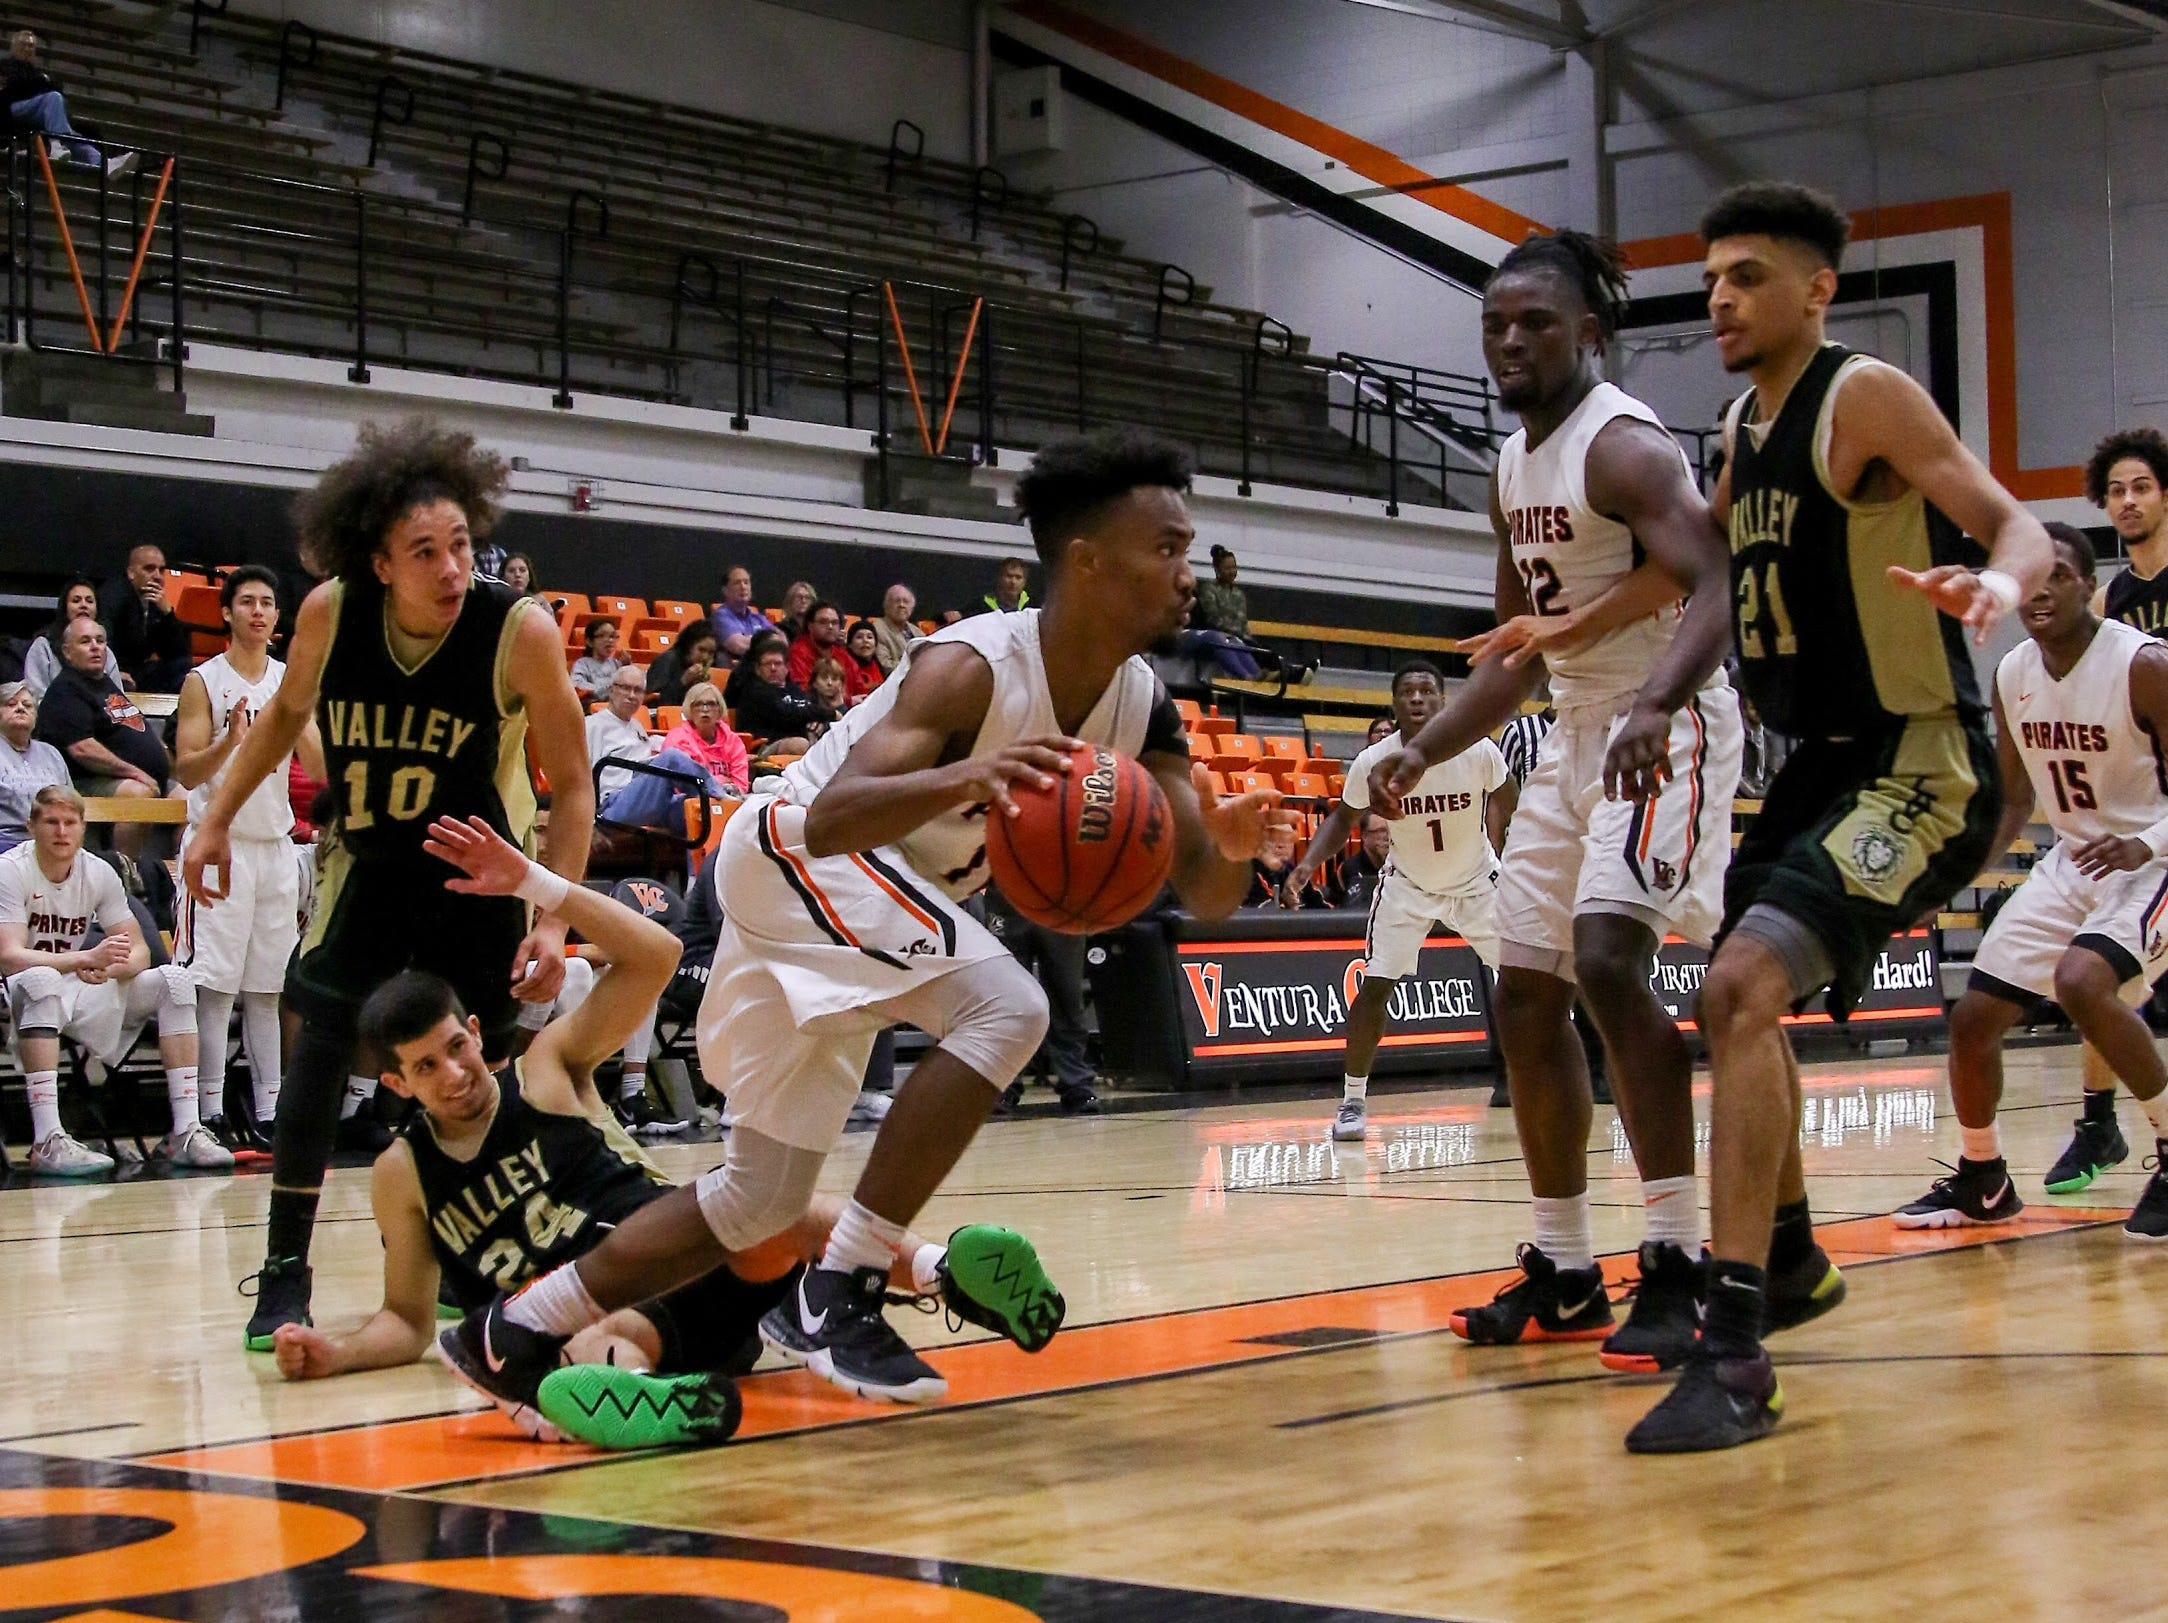 Ventura College freshman Tim Turner penetrates against Los Angeles Valley on Wednesday night in the CCCAA Southern California regional quarterfinals at the VC Athletic Event Center. L.A. Valley won, 78-74.